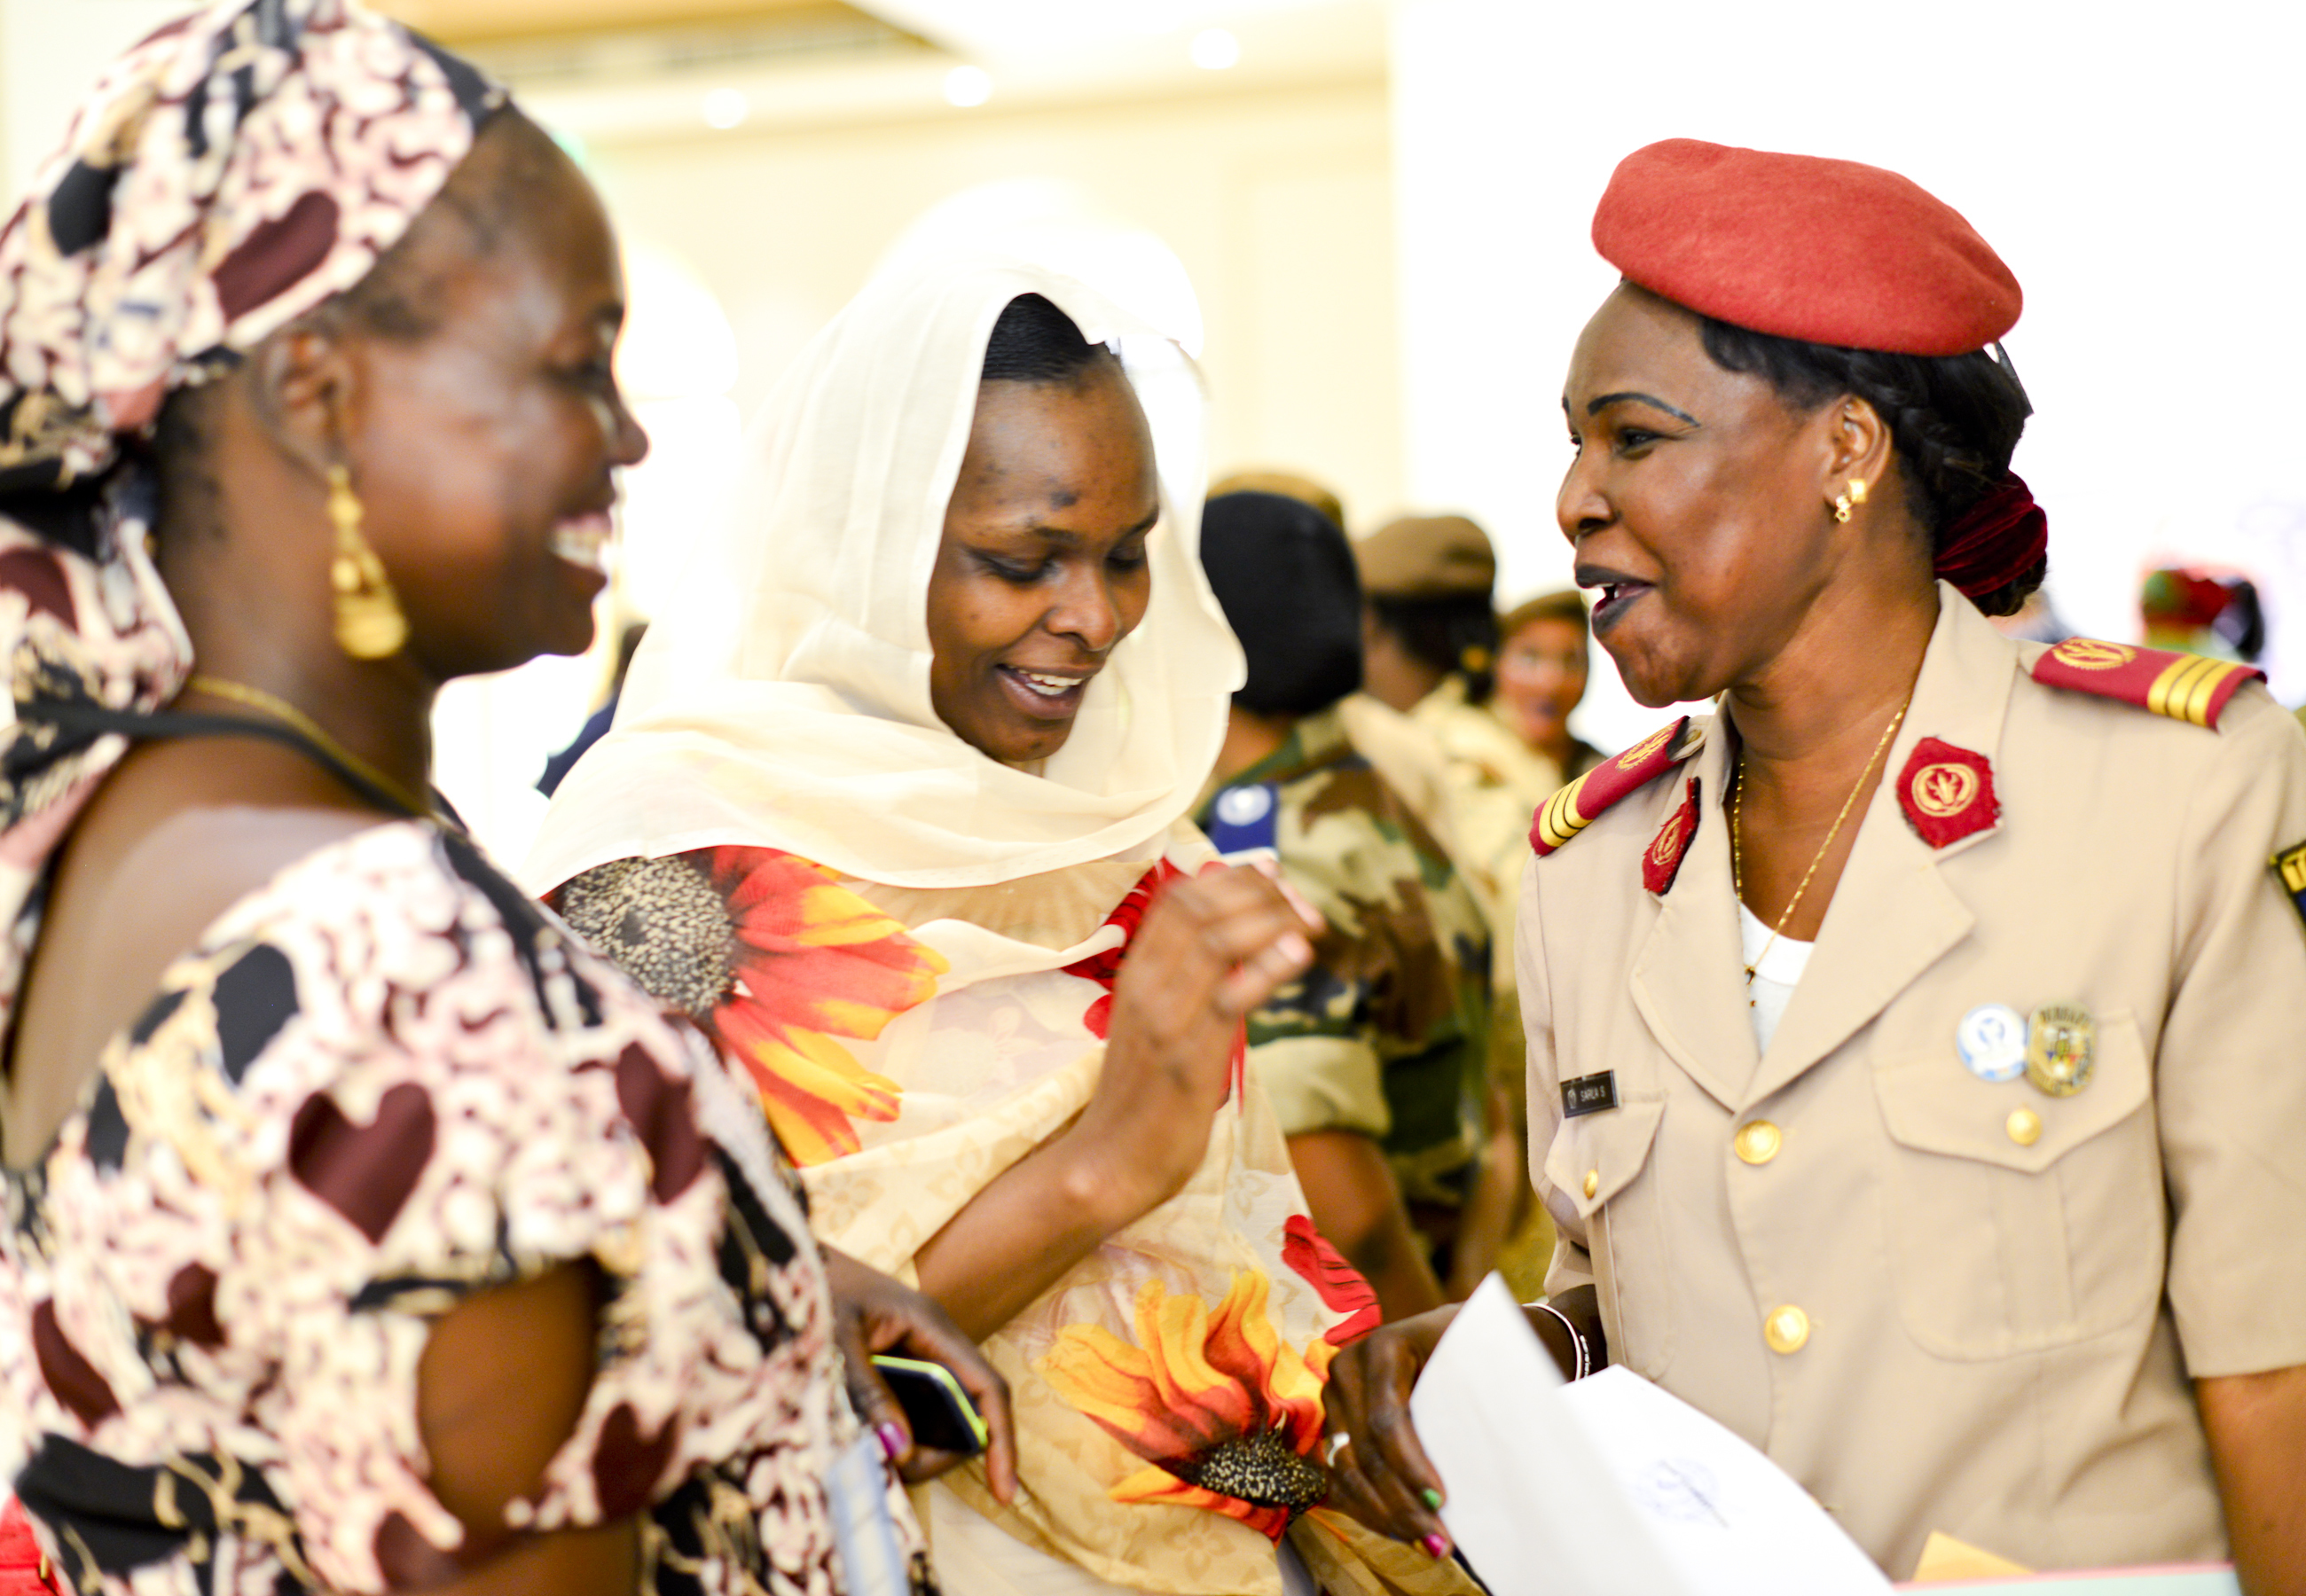 Special Operations Command Africa hosted its first Women's Leadership Forum on the eve of International Women's Day in N'Djamena, Chad, Mar. 7, 2017, as a part of Exercise Flintlock 2017.  This leadership discussion forum was led by Chadian women from across the spectrum of employment to address Chadian challenges and opportunities, and was facilitated by the U.S. Embassy and Spirit of America. Flintlock is an annual special operations exercise involving more than 20 nation forces that strengthens security institutions, promotes multinational sharing of information, and develops interoperability among partner nation in North and West Africa. (Photo by Richard Bumgardner/Released)